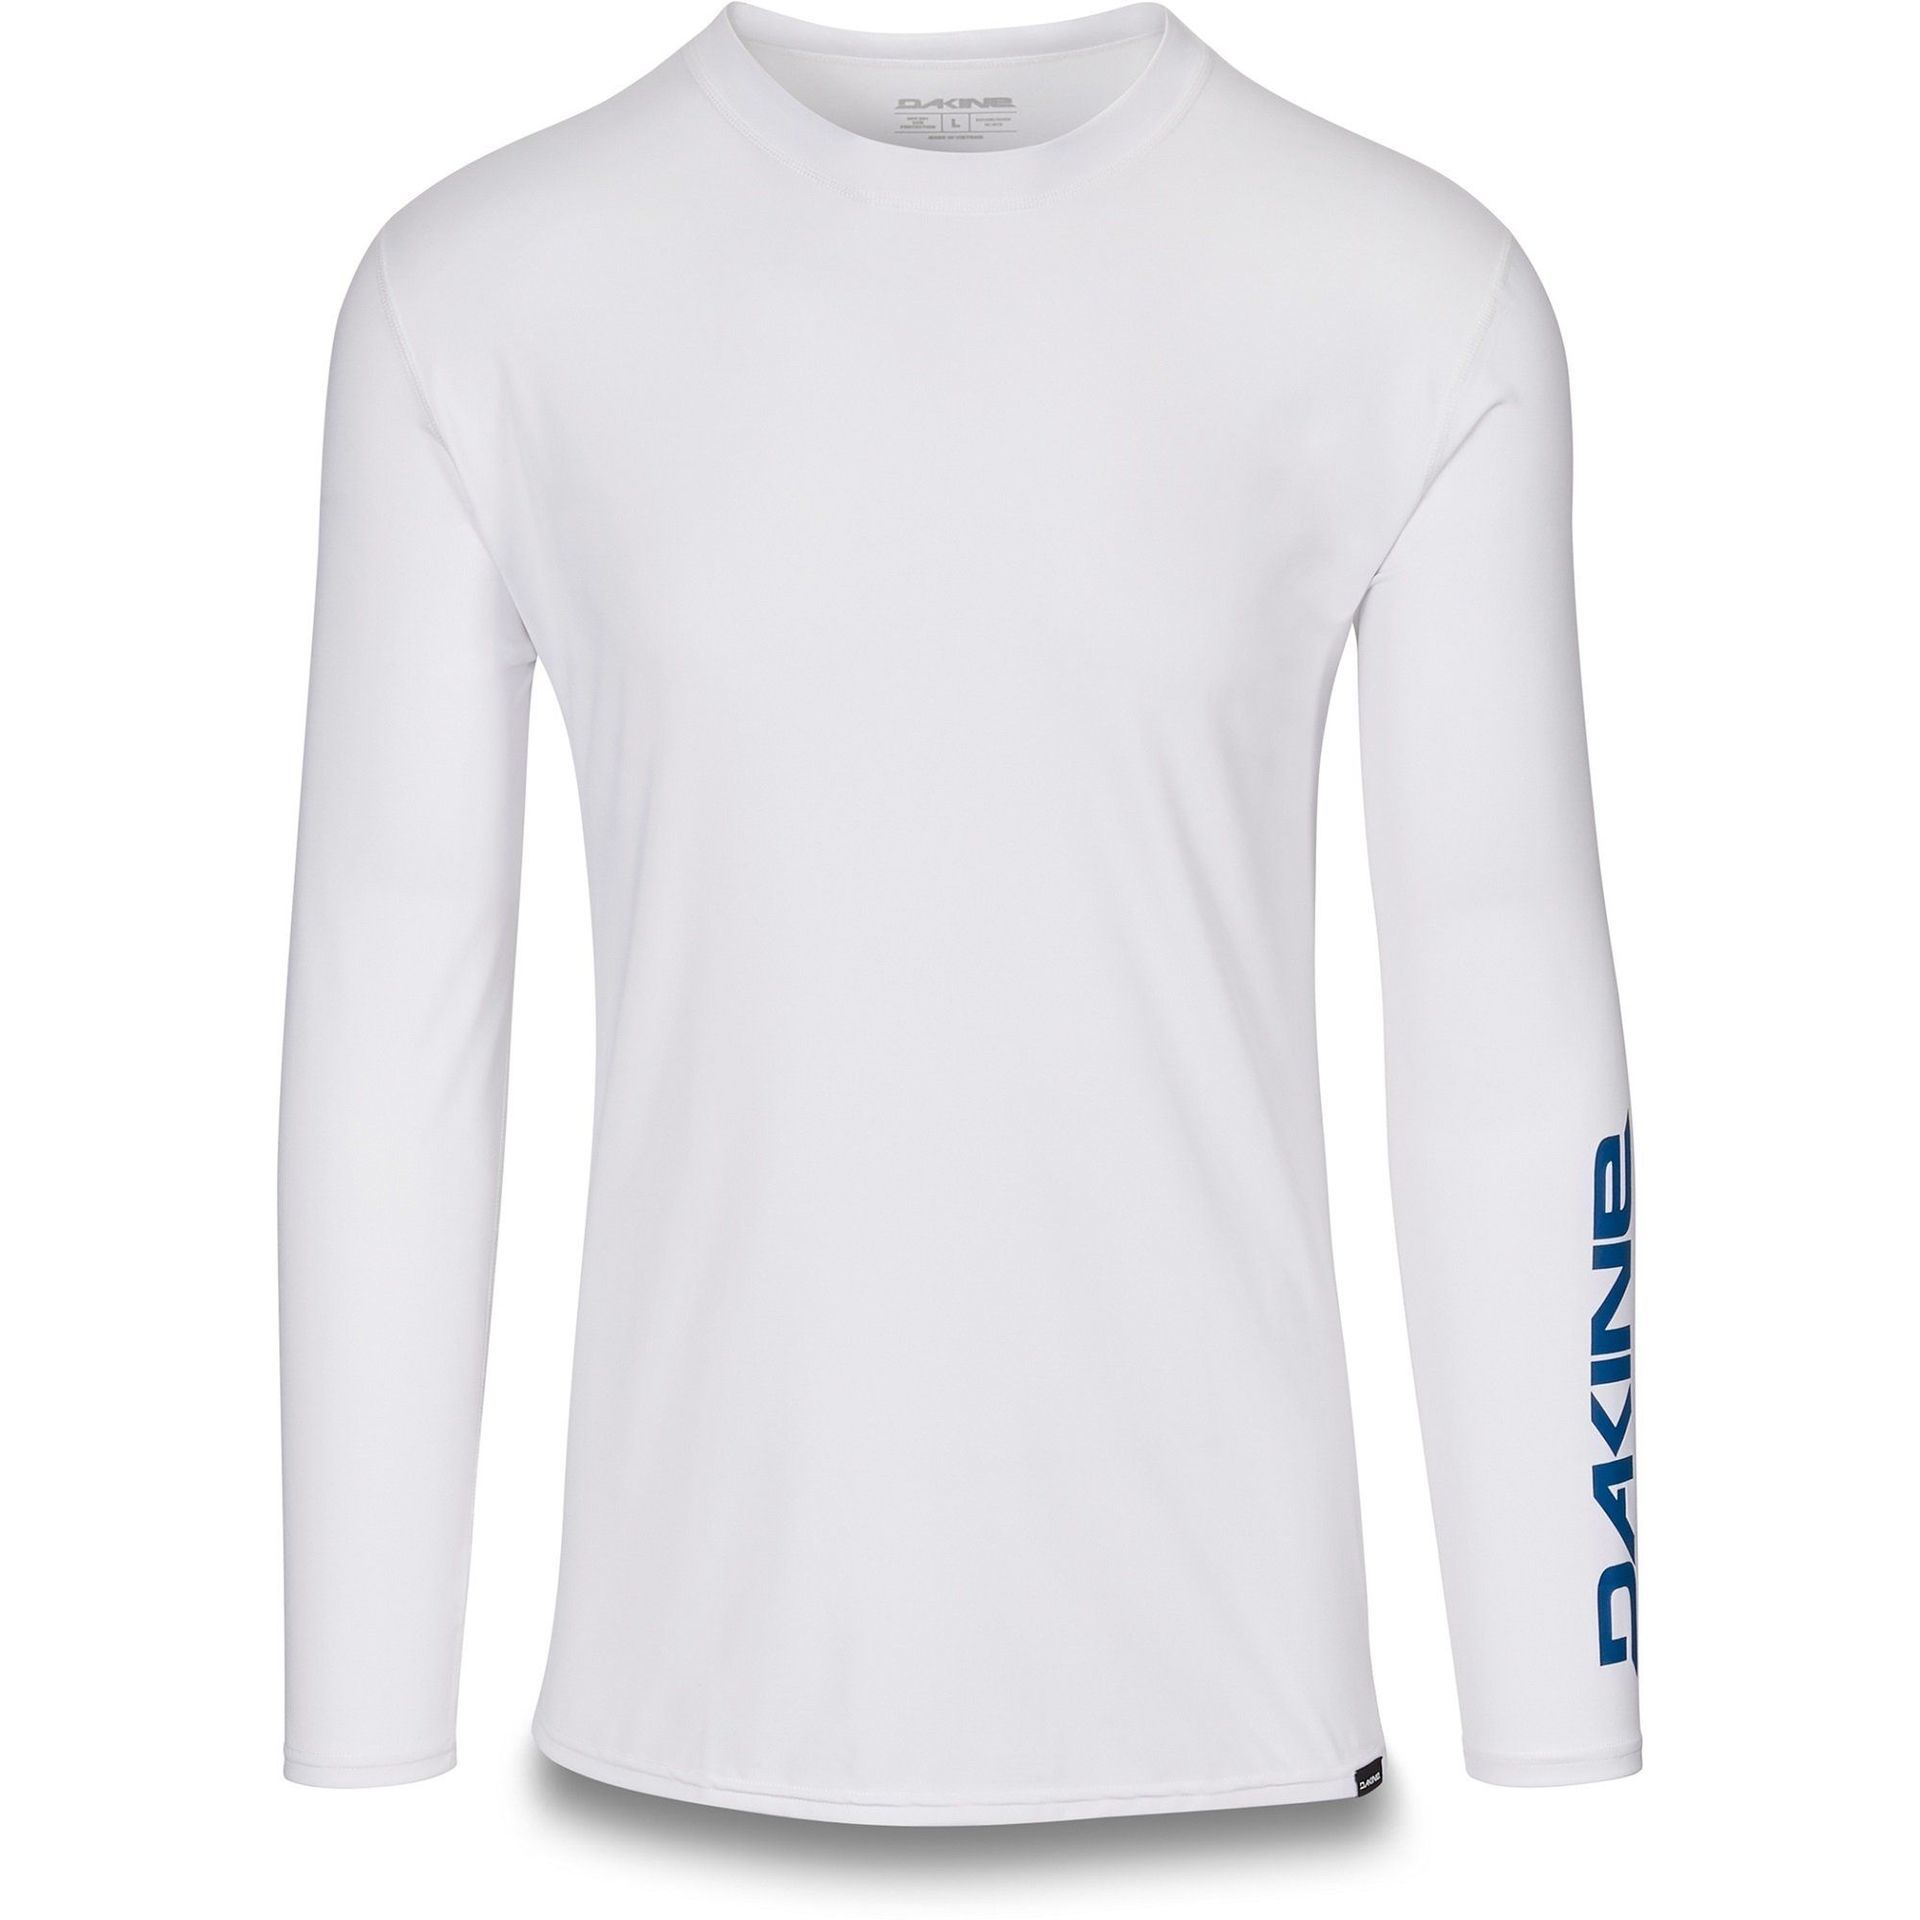 LYCRA DAKINE M HEAVY DUTY LOOSE FIT LS WHITE